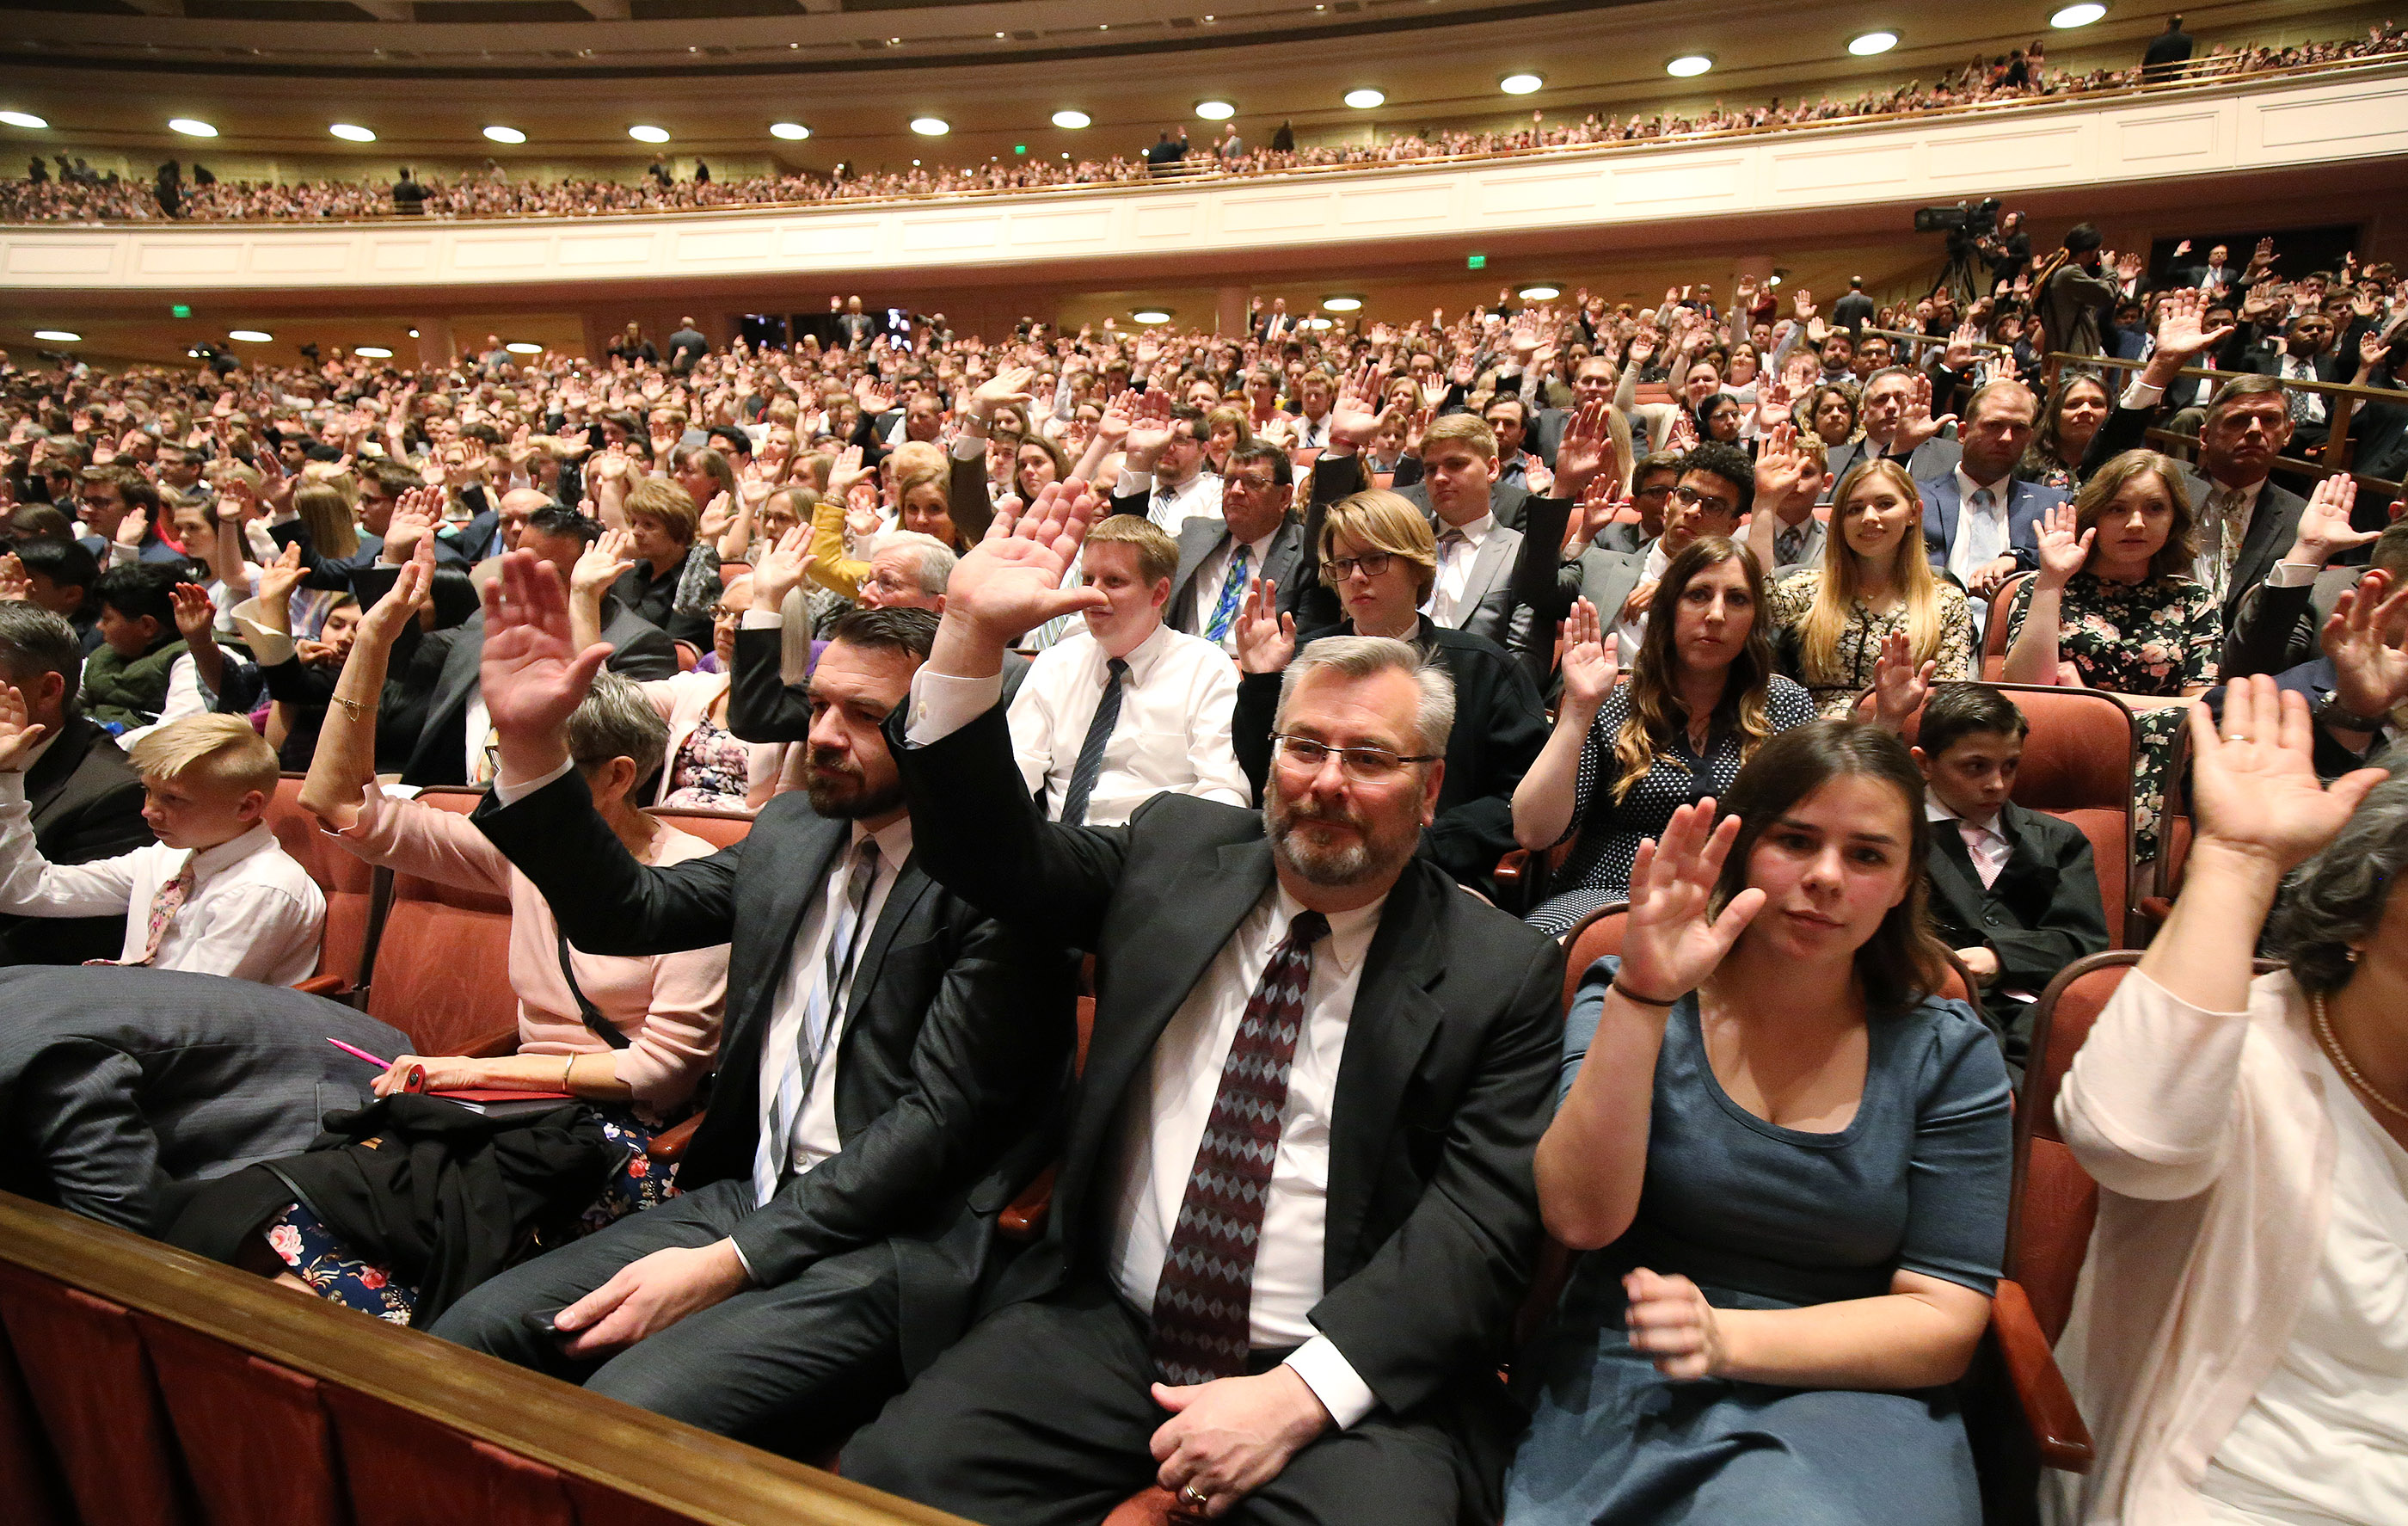 Attendees in the Conference Center sustain leaders the Saturday afternoon session of the 189th Annual General Conference of The Church of Jesus Christ of Latter-day Saints in Salt Lake City on Saturday, April 6, 2019.